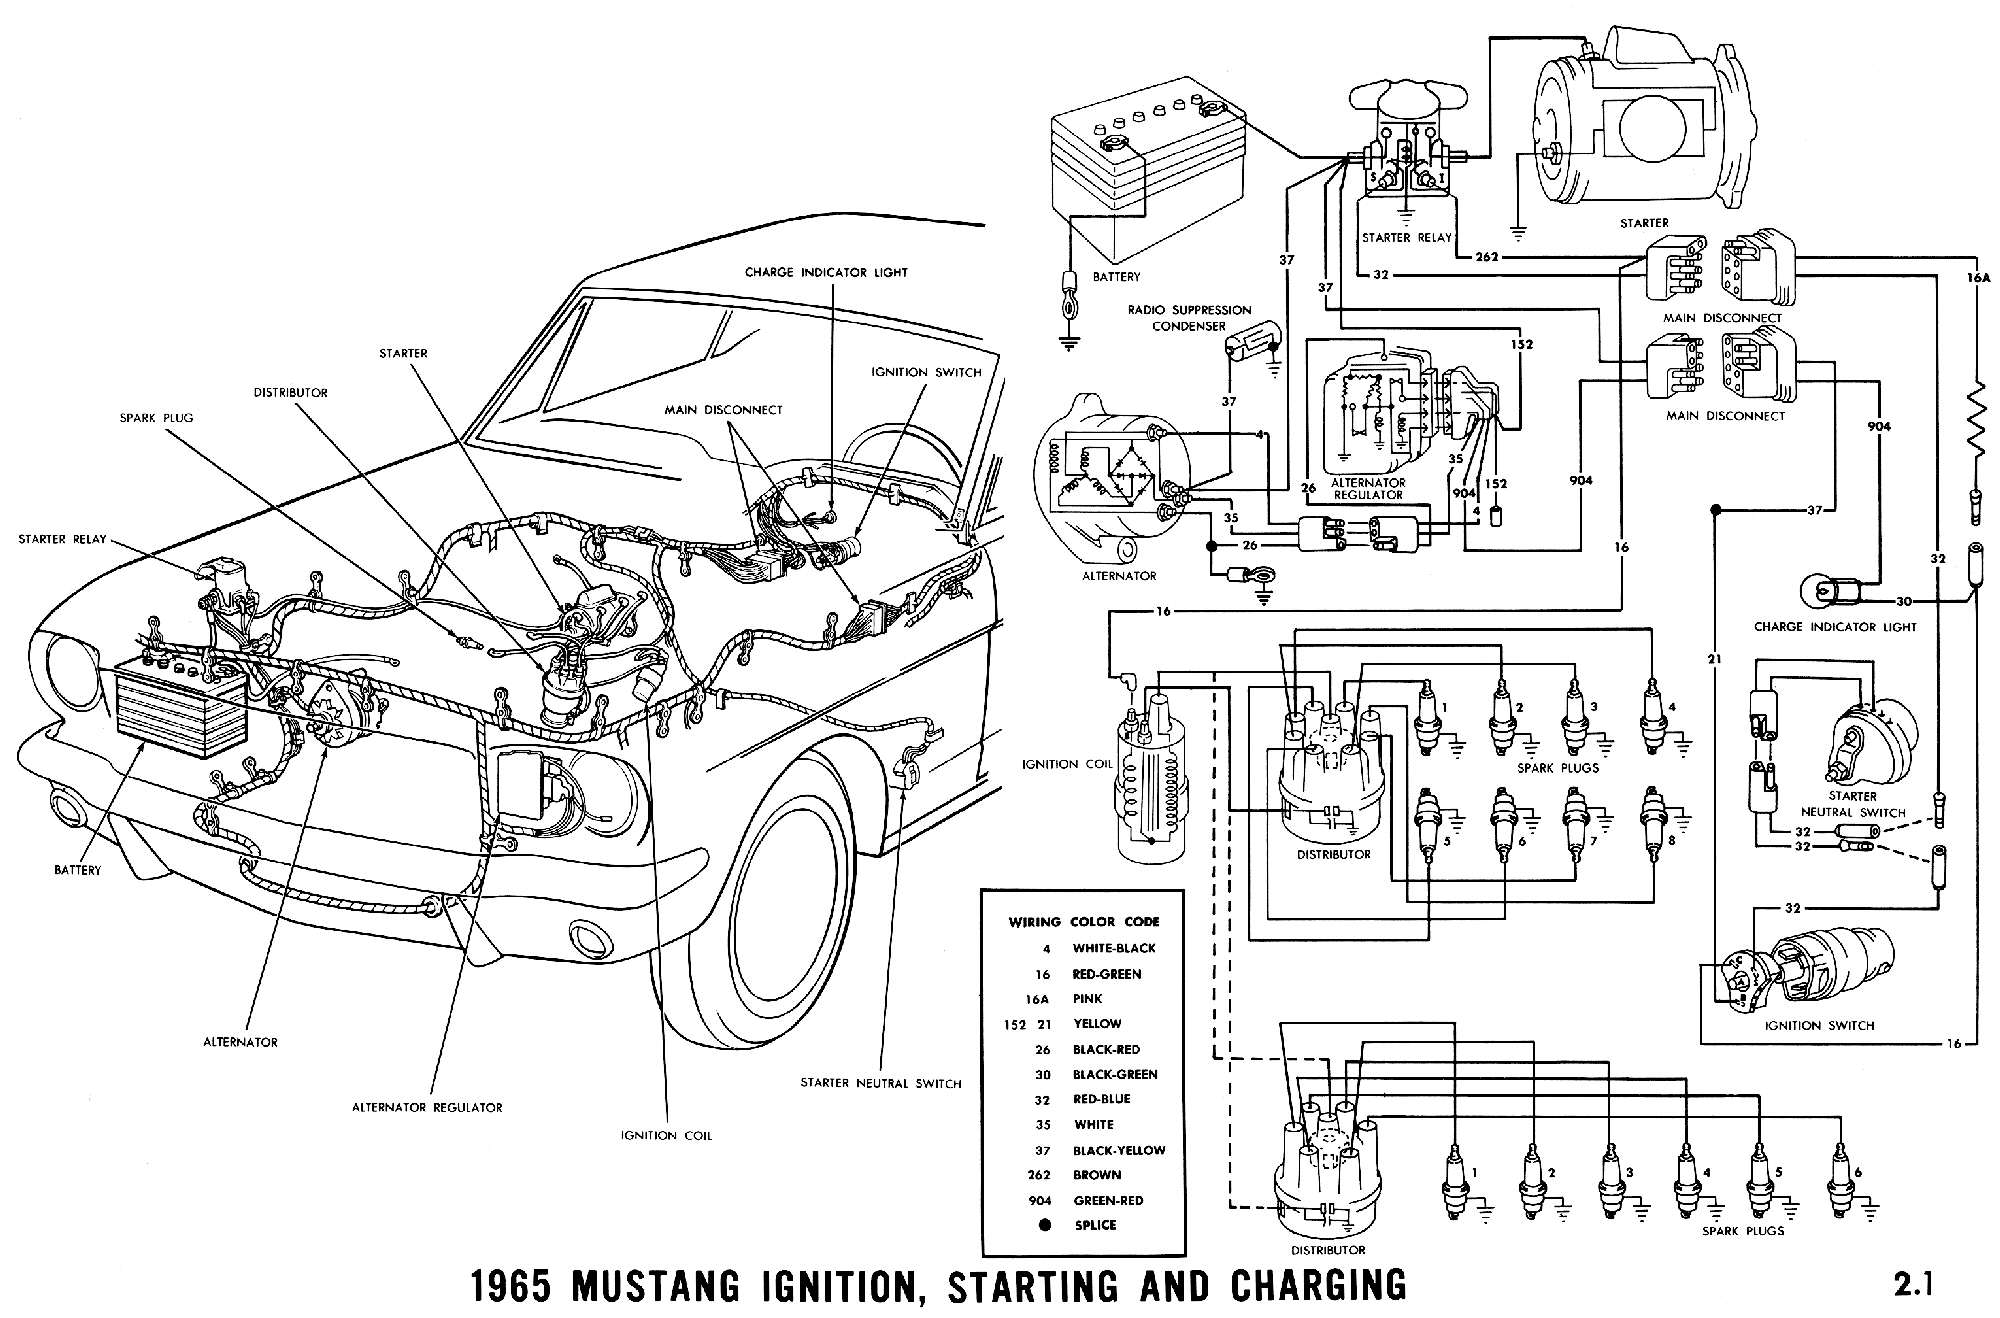 1965c 1965 mustang wiring diagrams average joe restoration 1966 mustang wiring harness at readyjetset.co